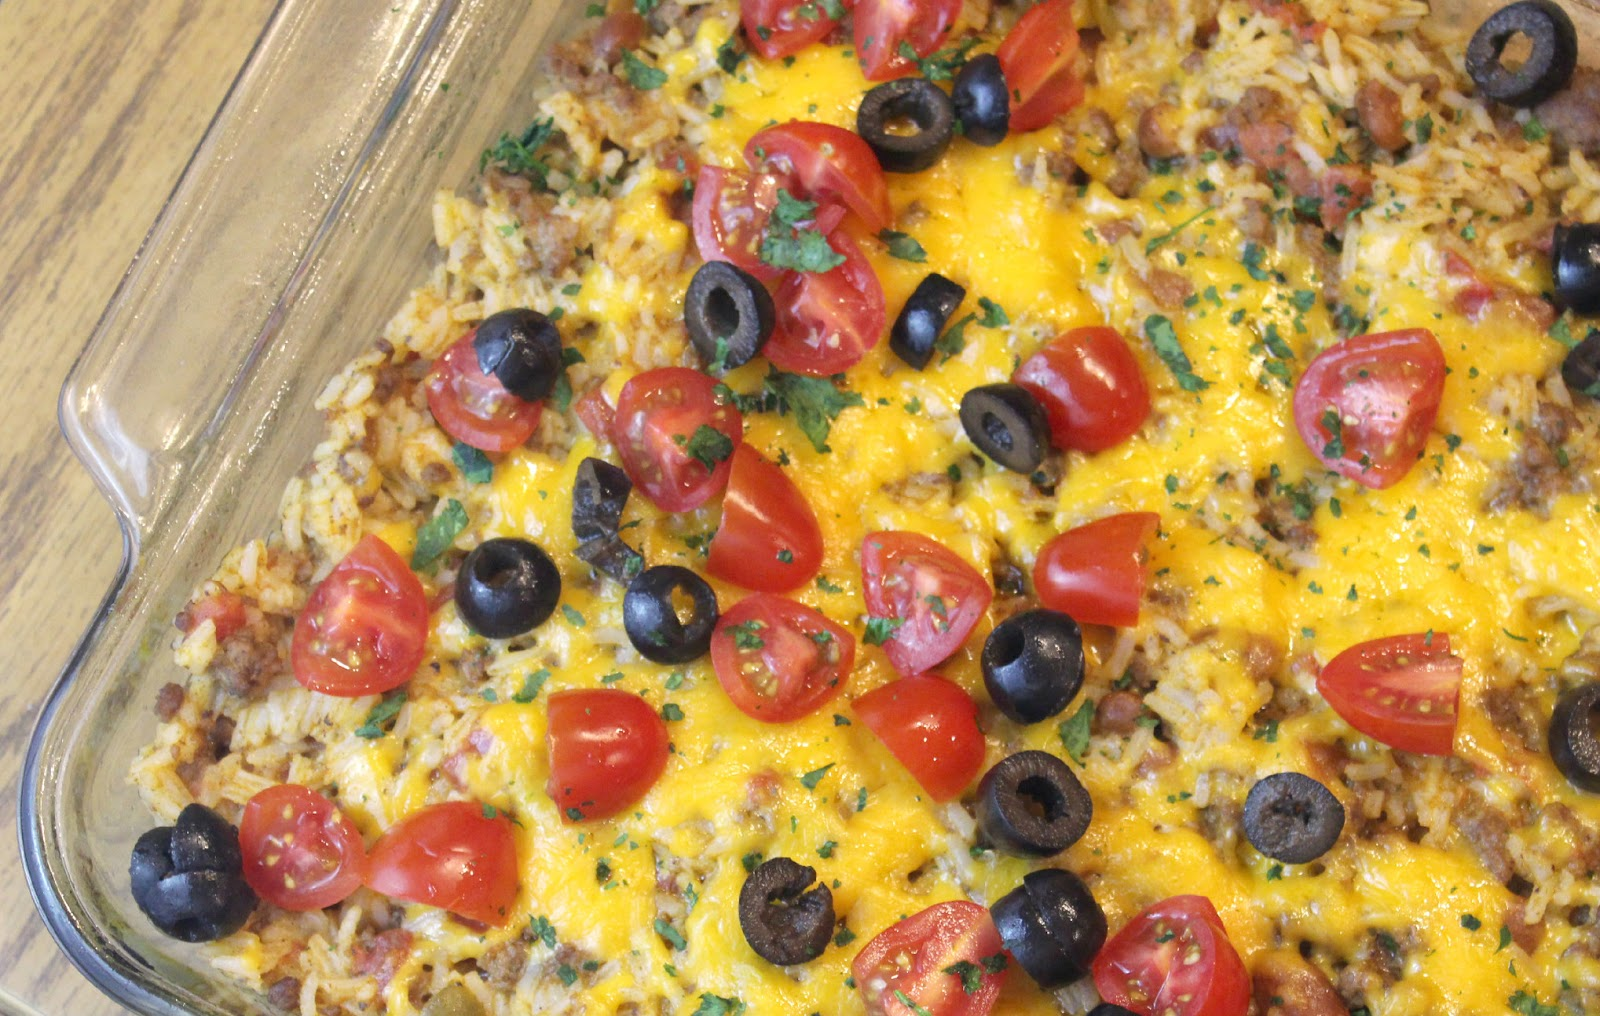 Cheese covered ground beef and rice. Topped with chopped tomatoes, sliced olives in a casserole dish